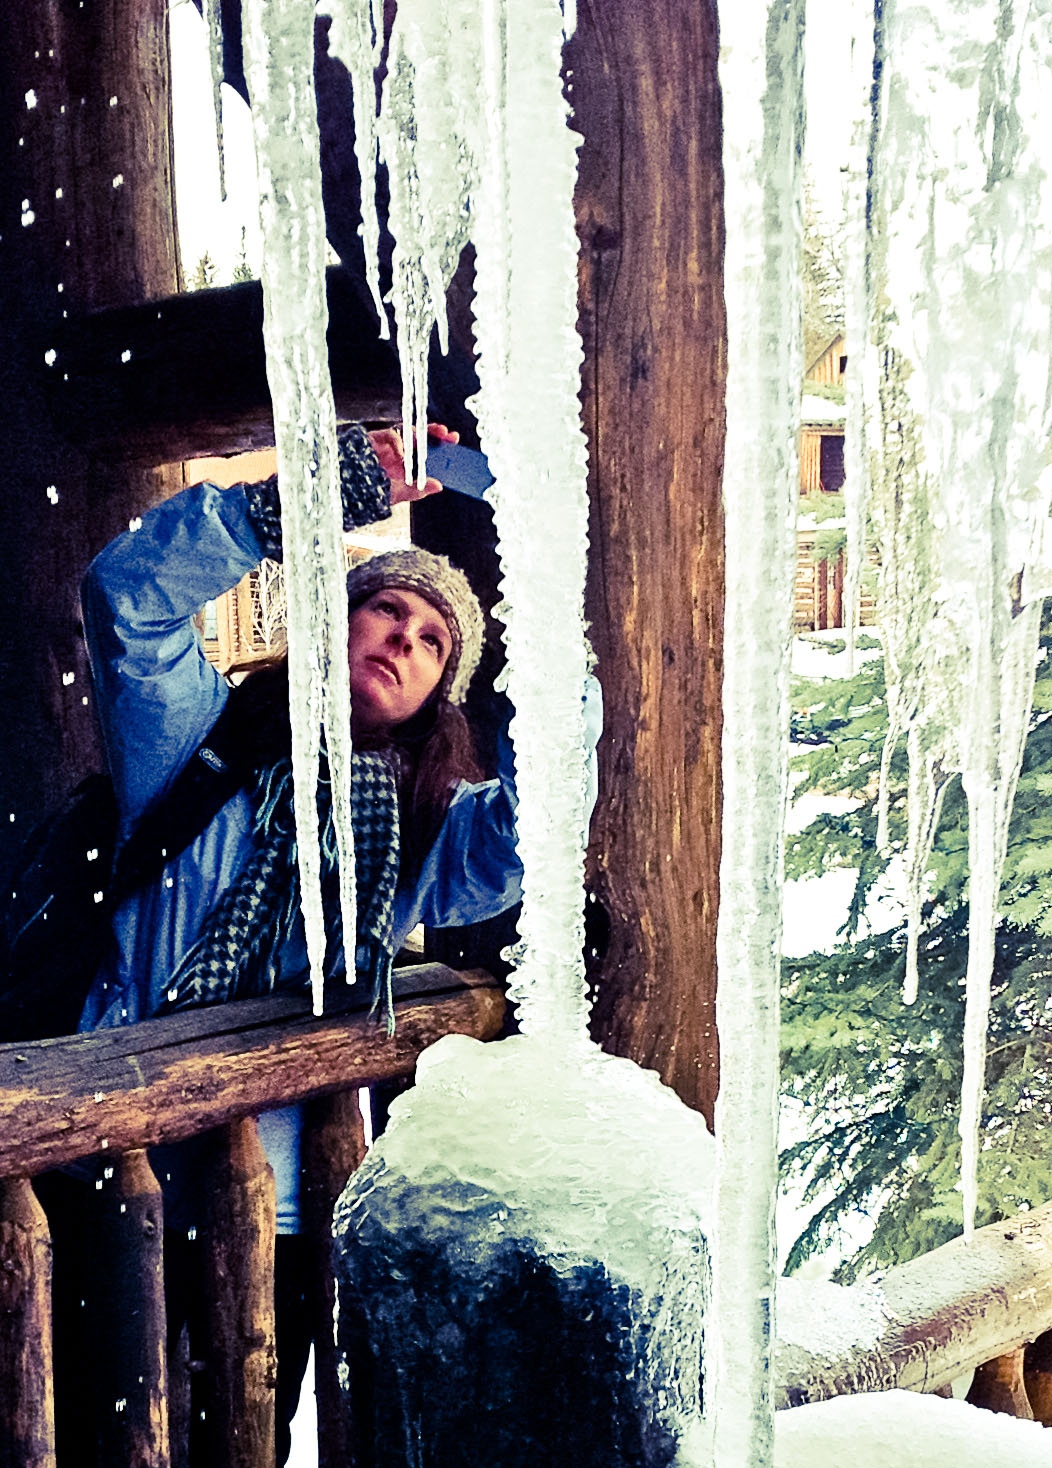 Michelle photographing icicles in Wyoming (Photo by Anne Connel)